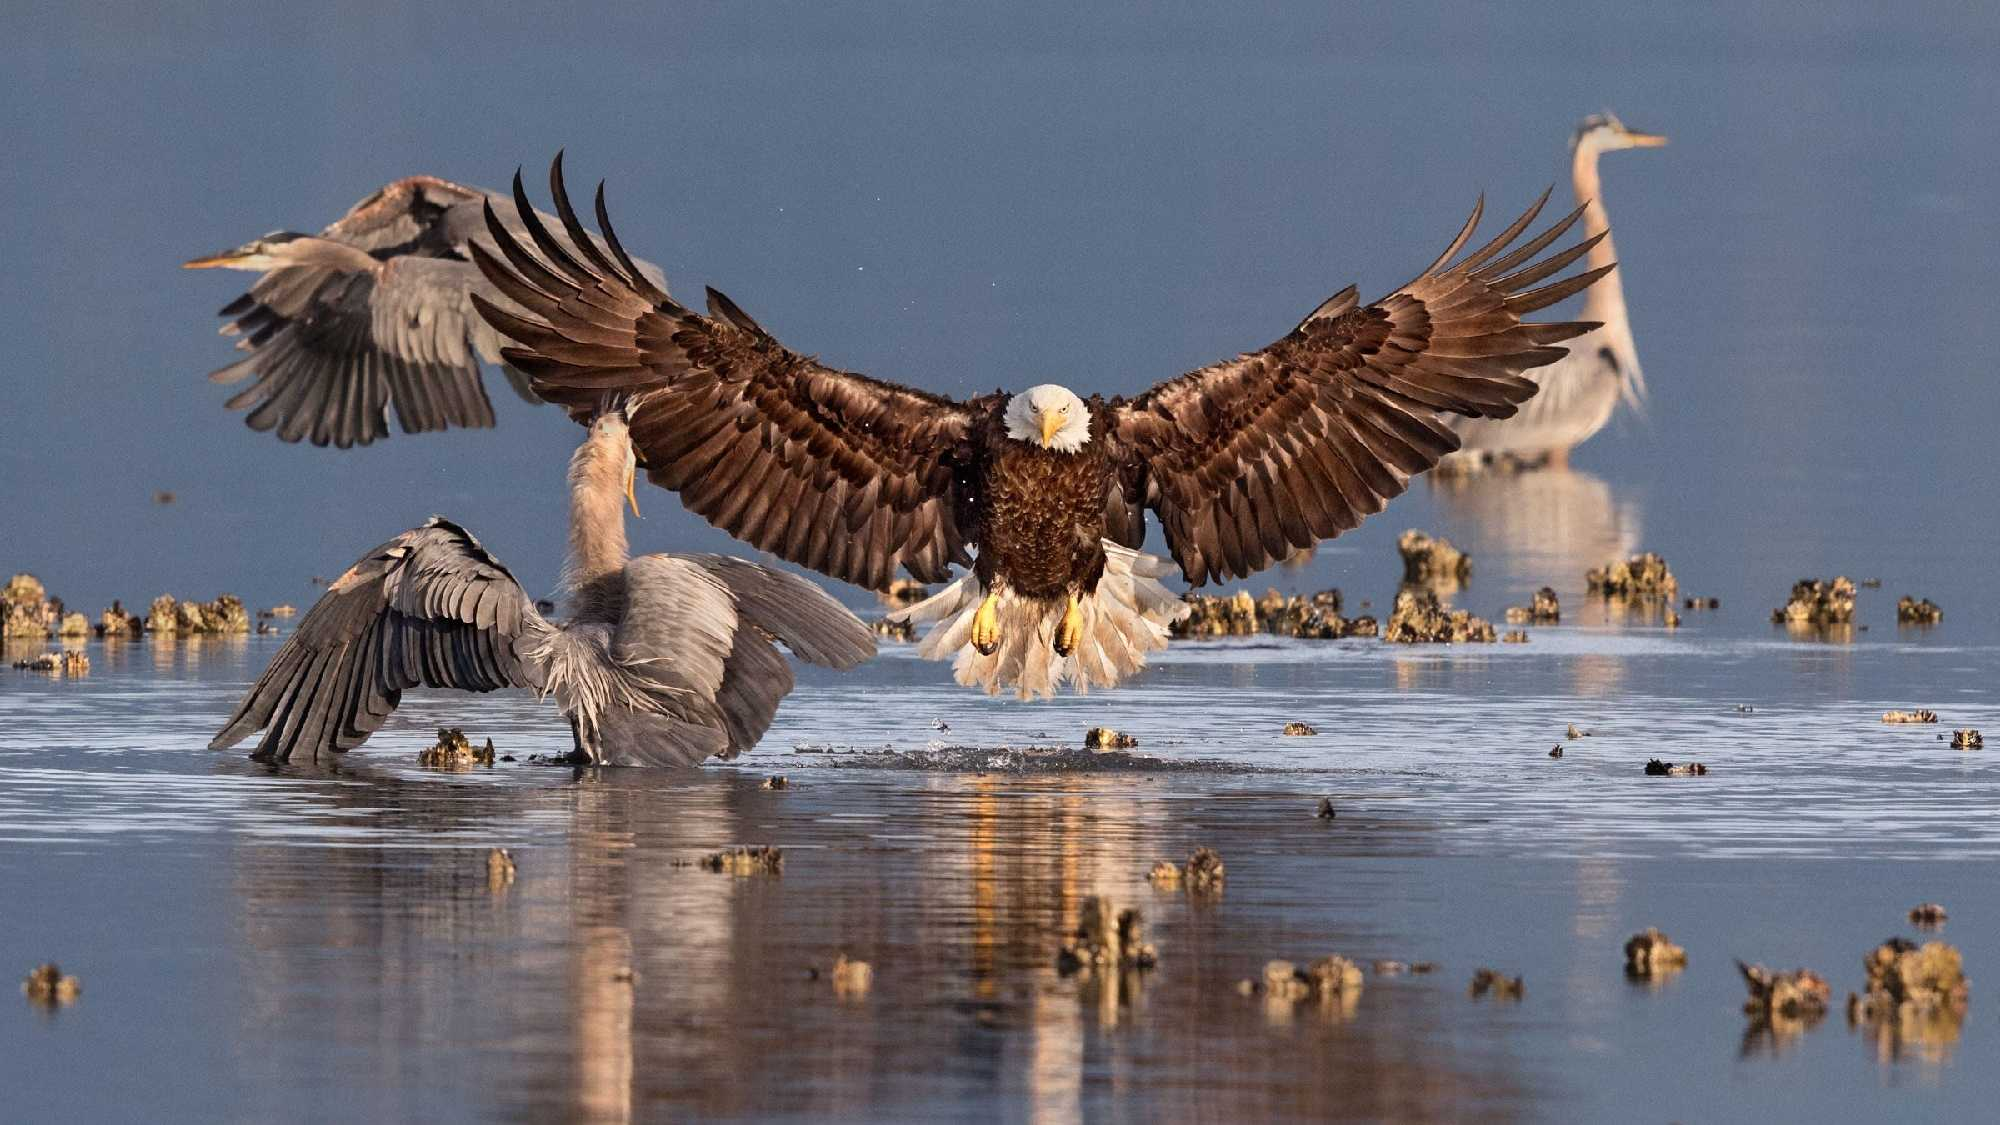 Grand Prize Winner - A bald eagle with a great blue heron by Bonnie Block/Audubon Photography Awards